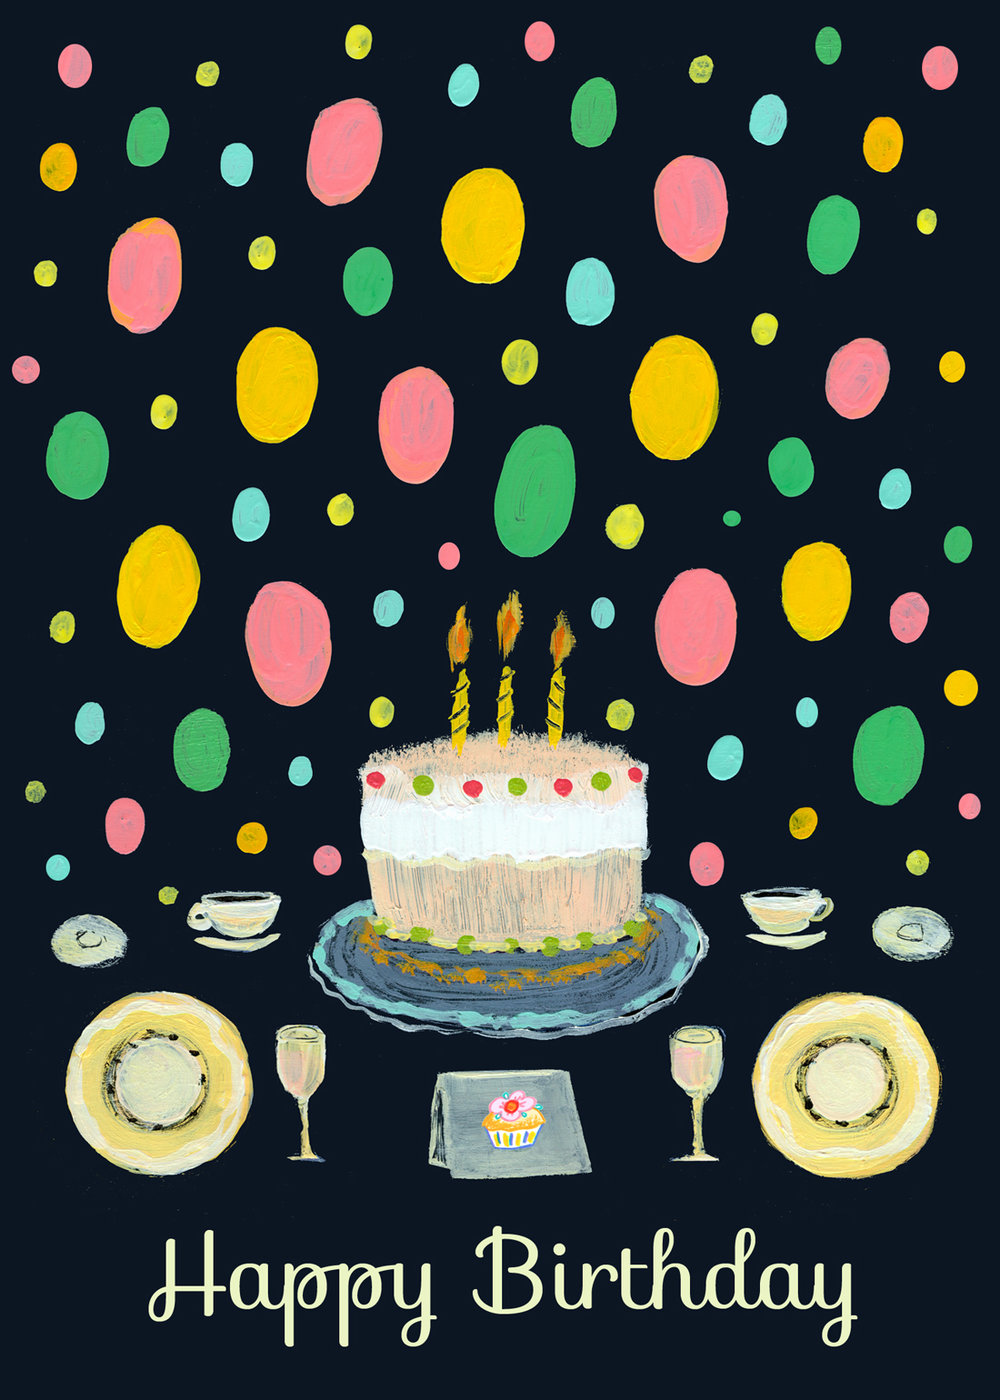 Allyn_Howard_birthday_tbl-Sttng-card.jpg